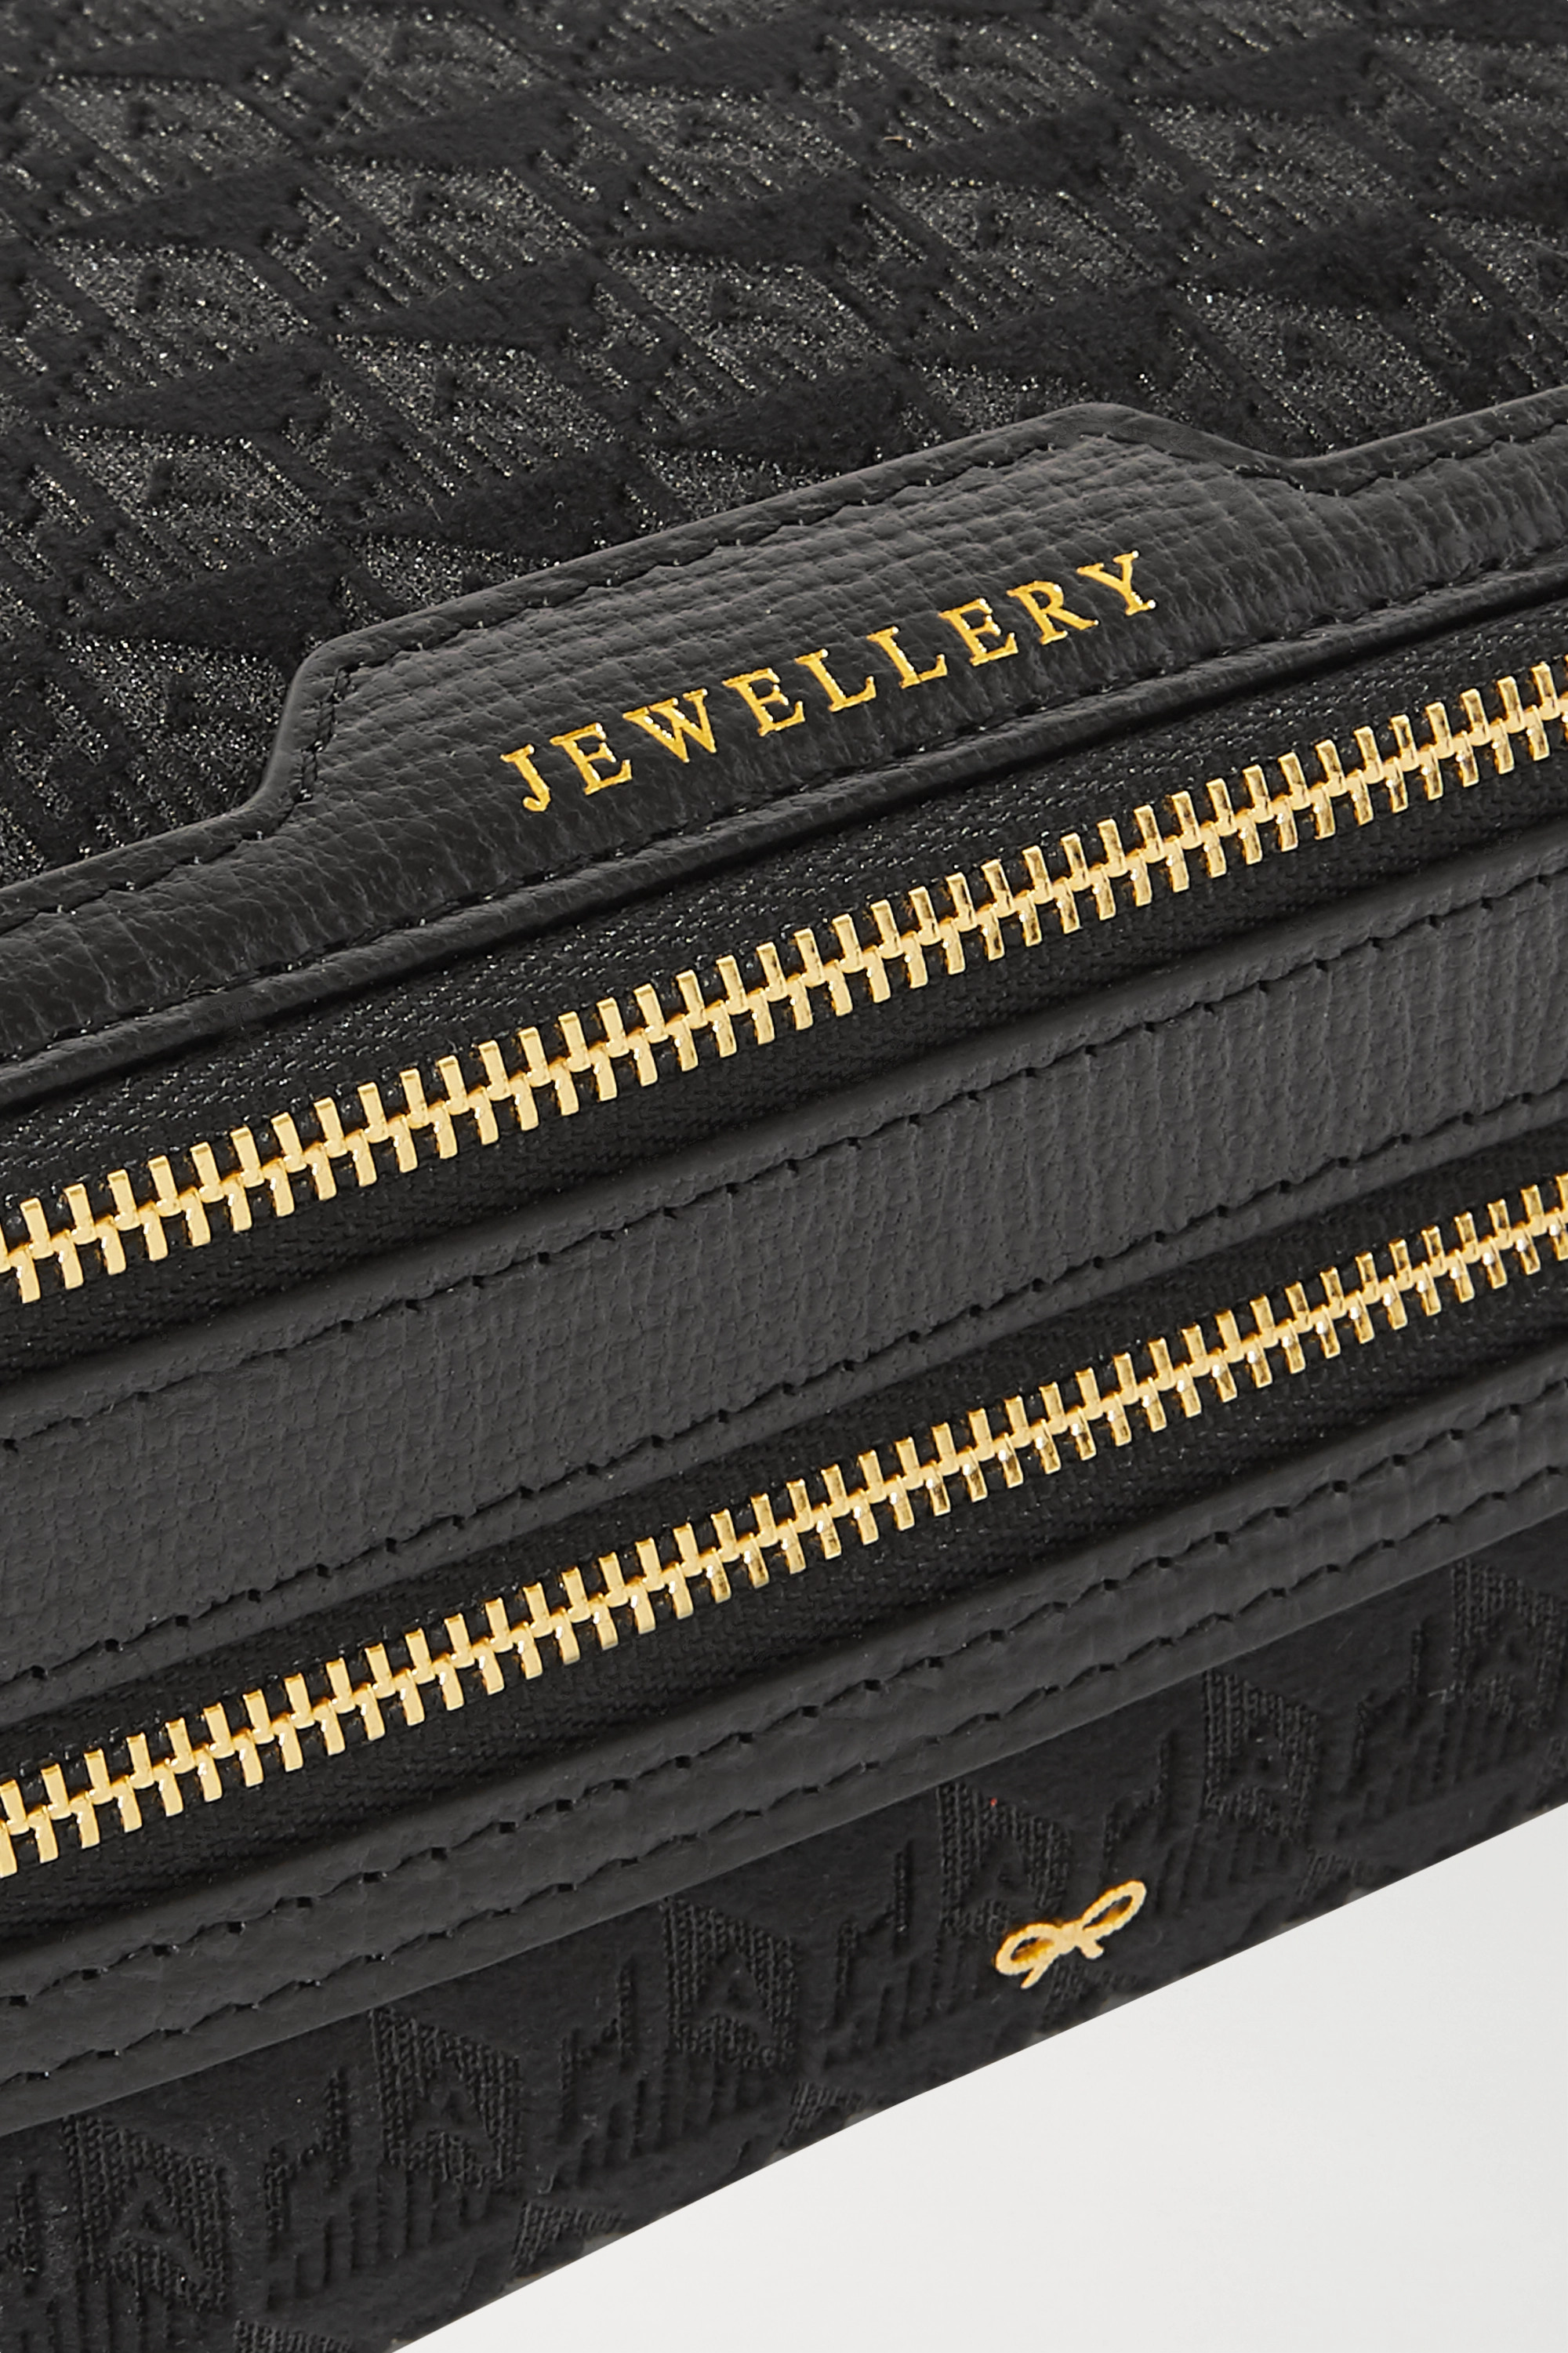 Anya Hindmarch Leather-trimmed velvet-jacquard jewelry case